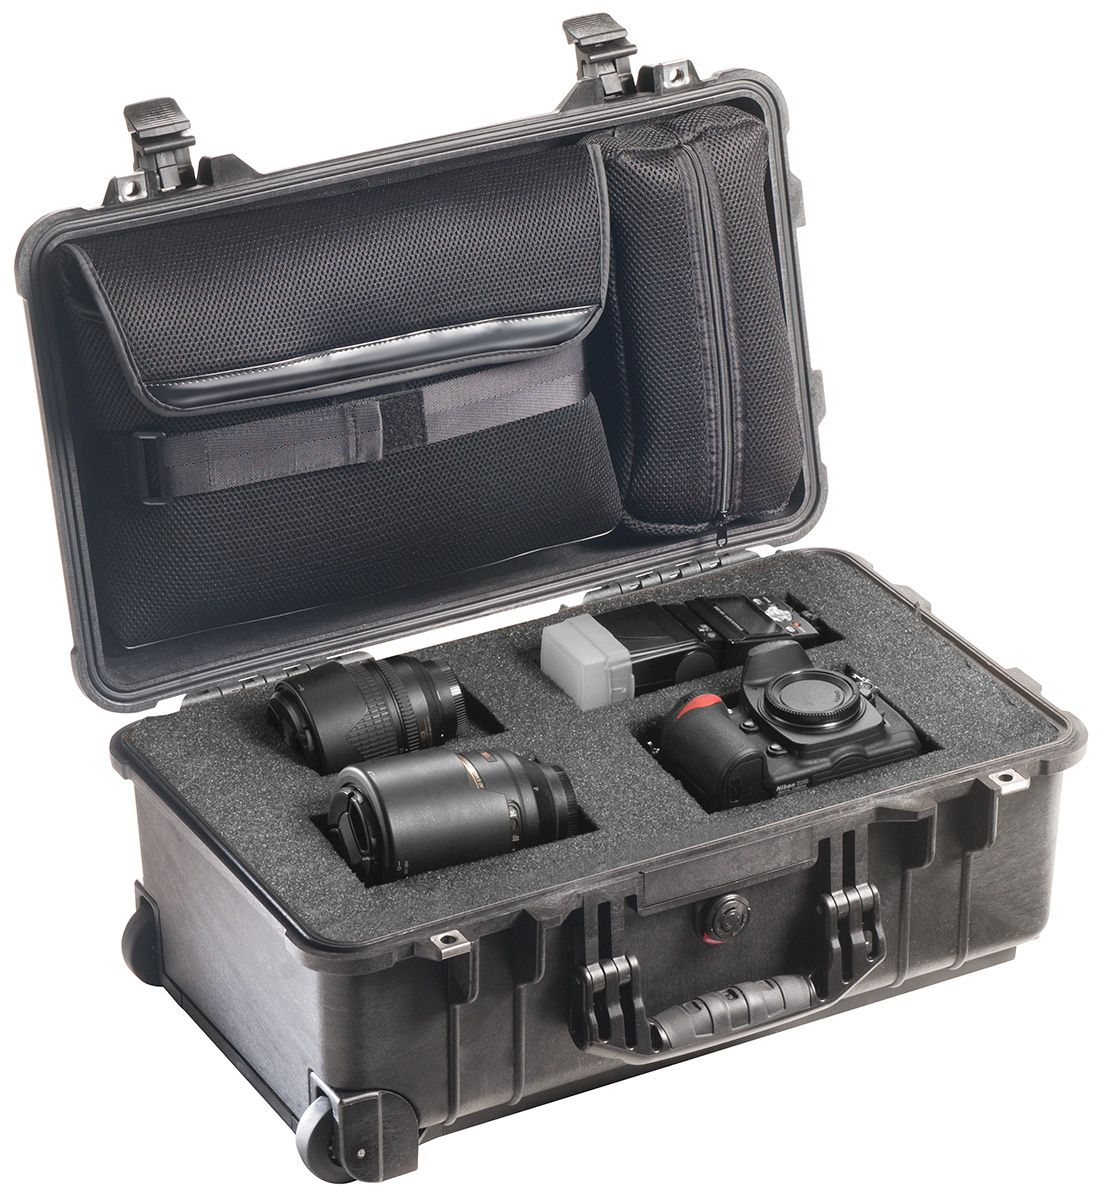 Camera Travel Pouch : Pelican peli products lfc professional rolling travel